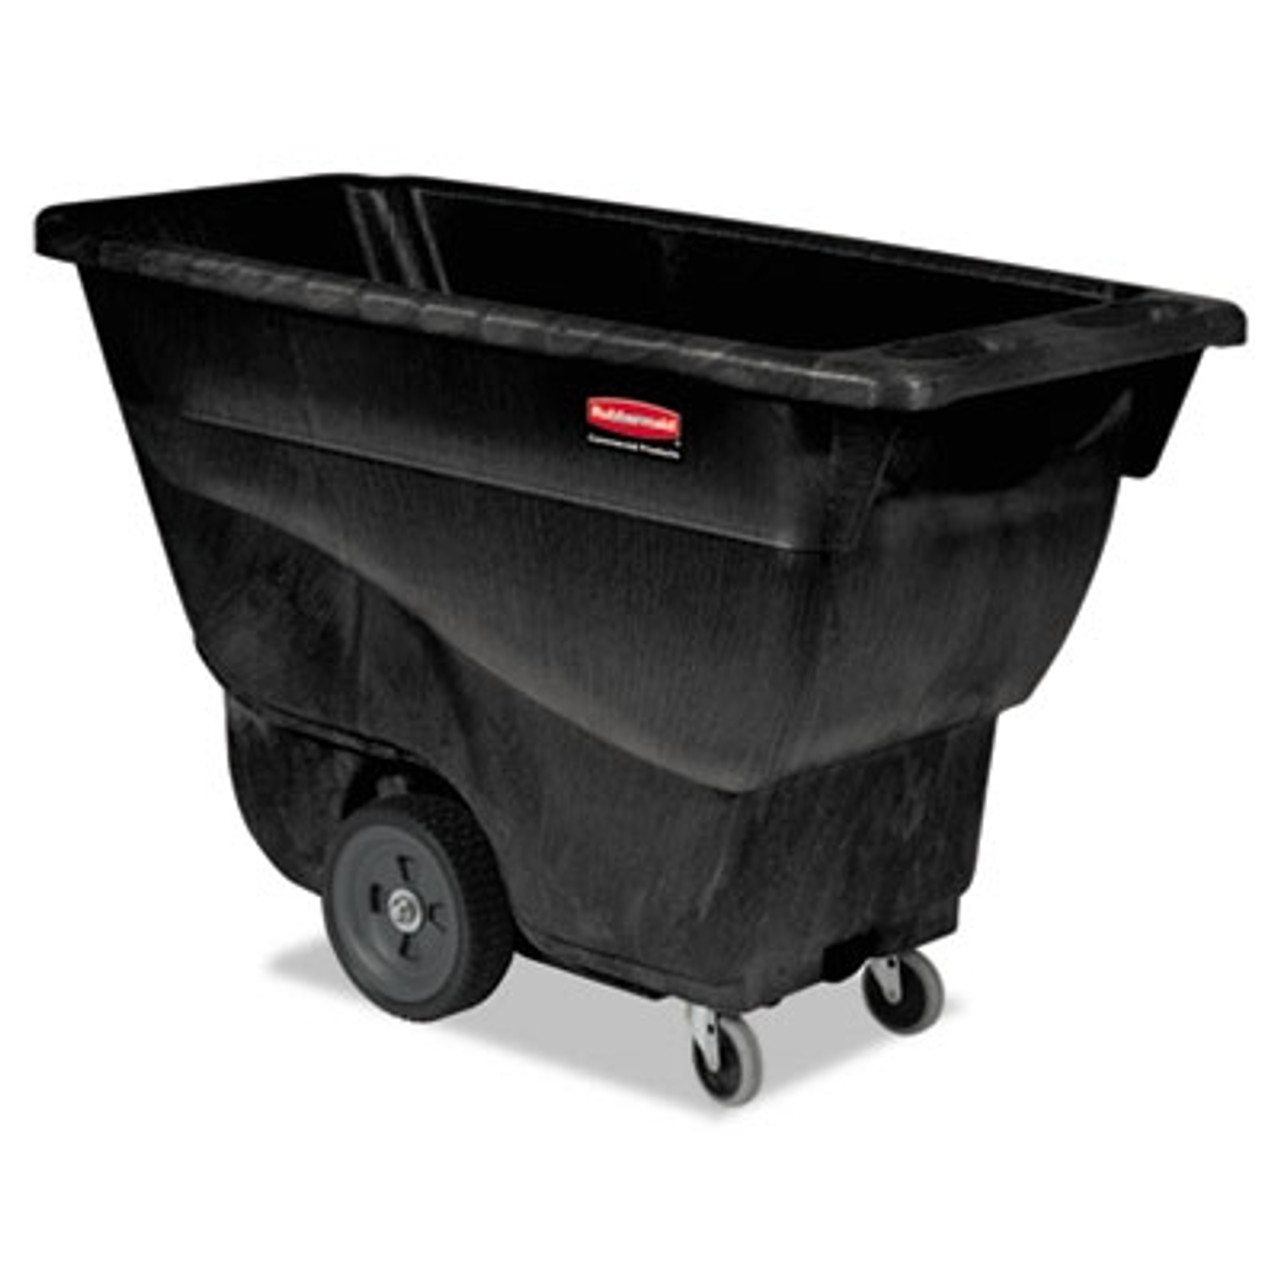 Rubbermaid Commercial Structural Foam Tilt Truck, Rectangular, 450 lb. Cap., Black